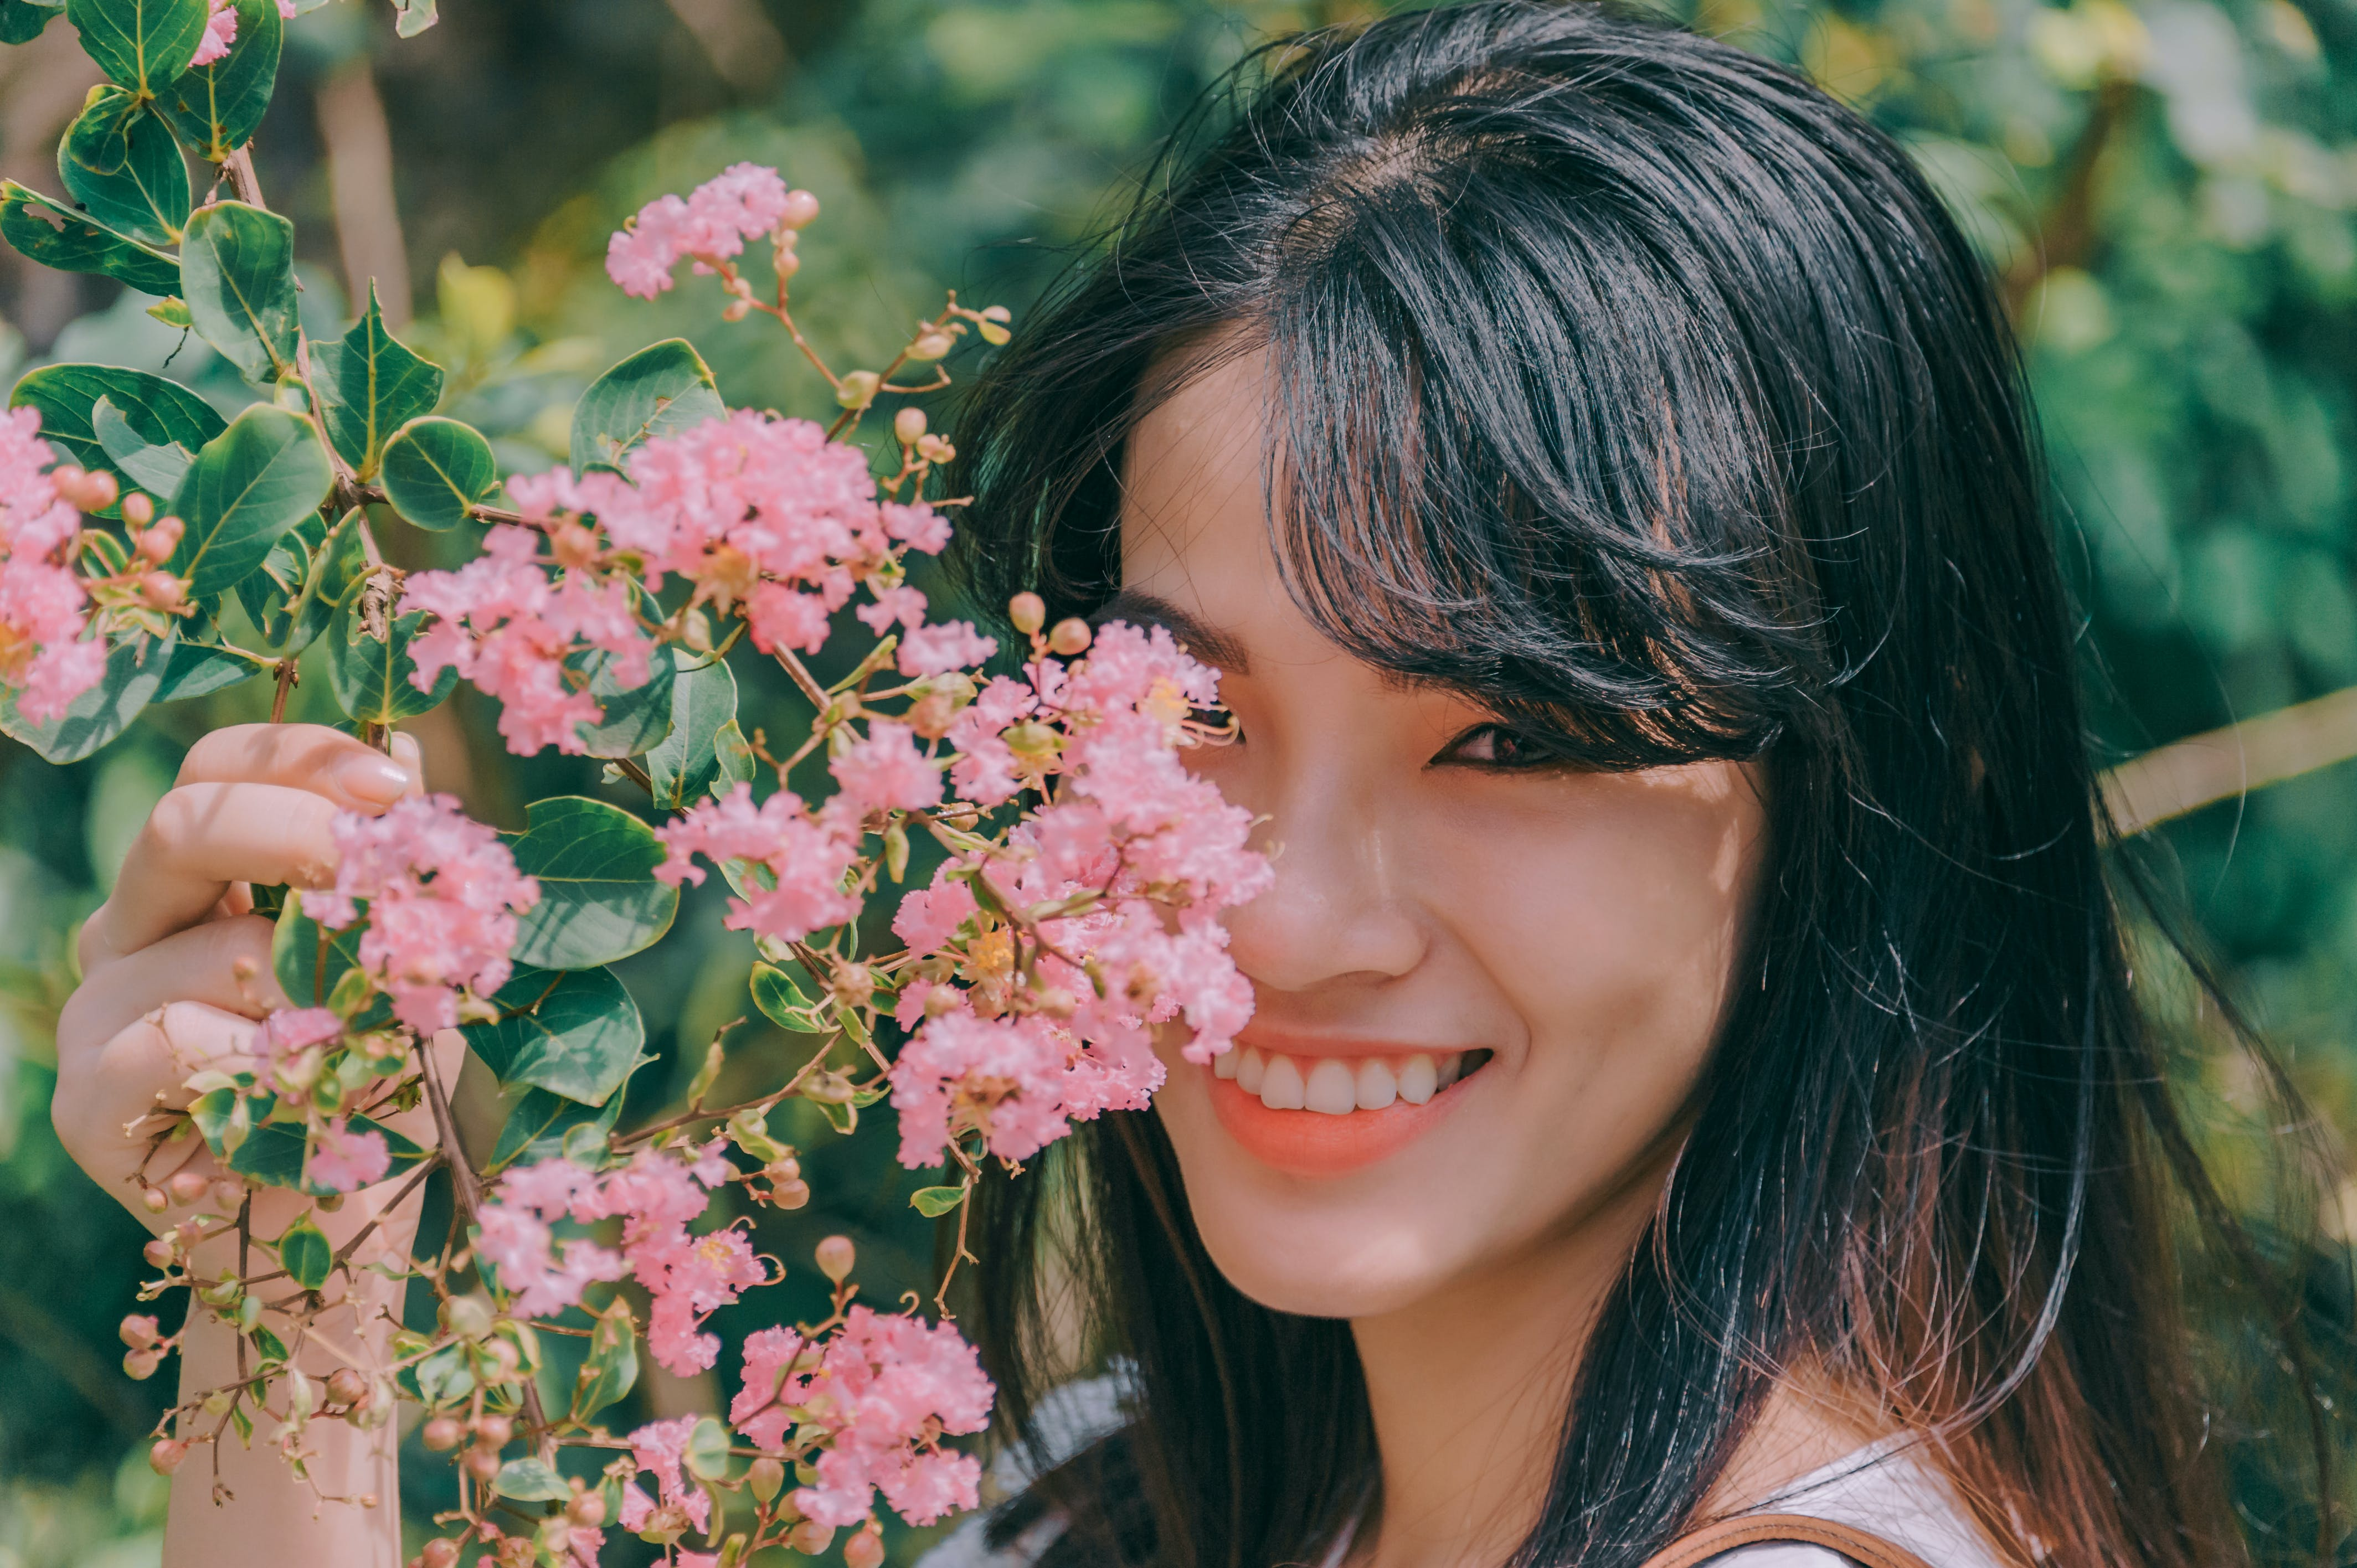 Black Haired Woman Smiling and Holding Pink Chestnut Flowers